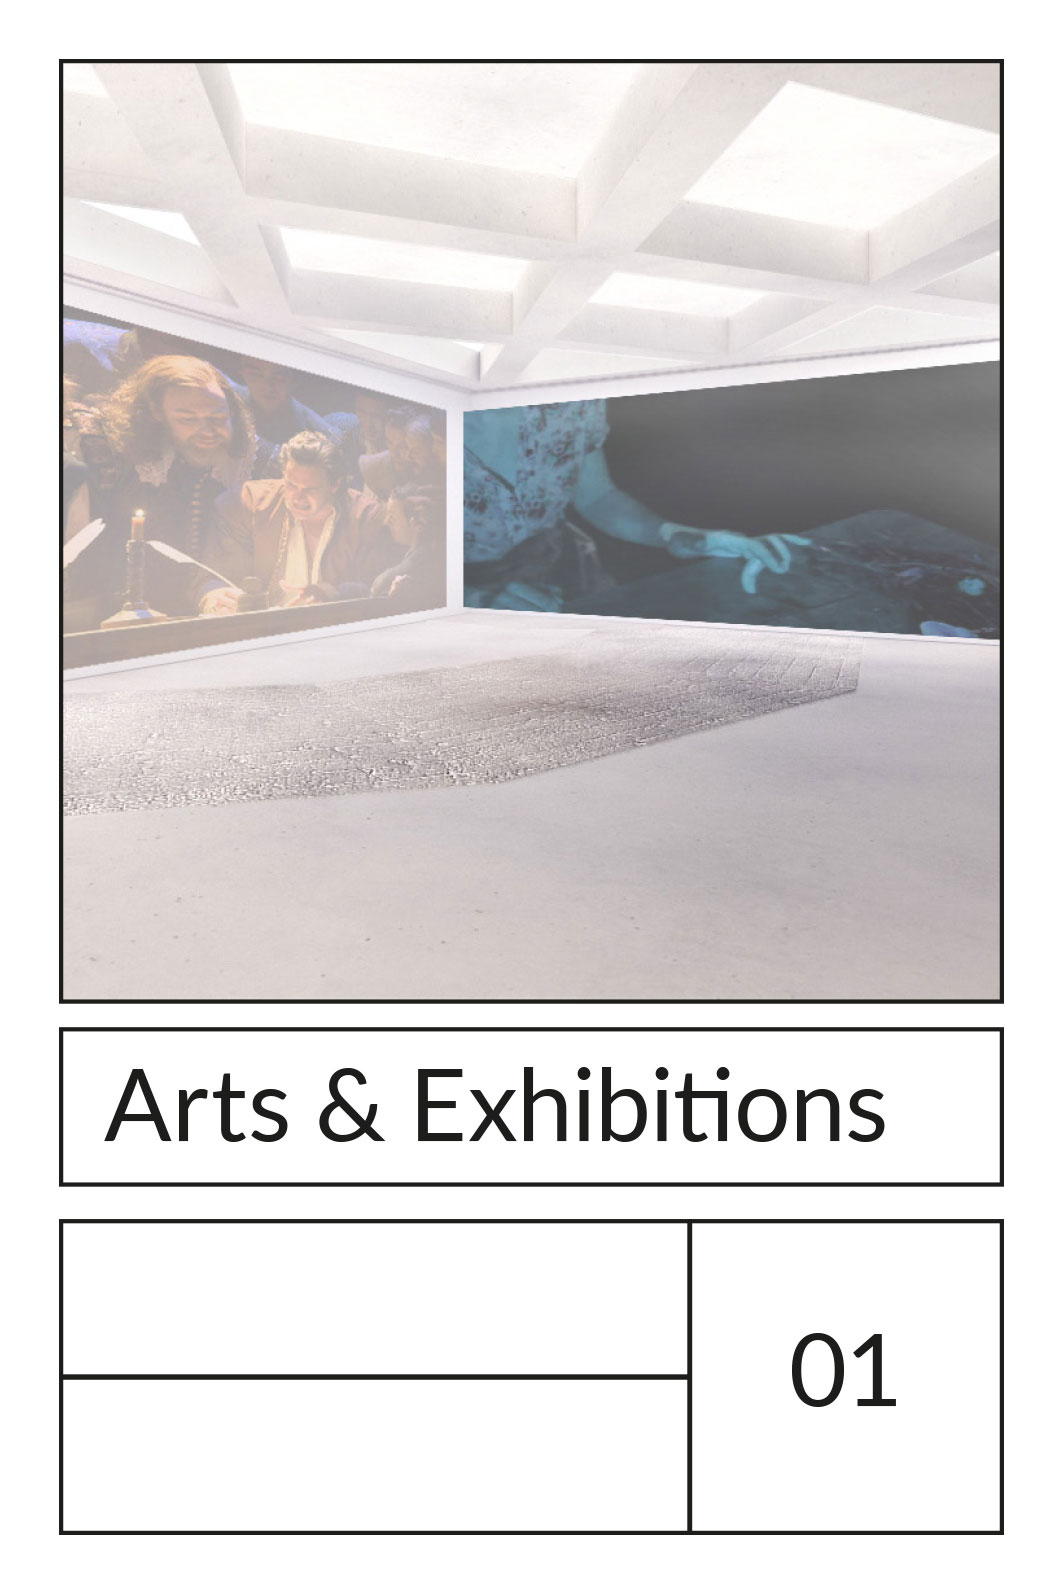 Arts and exhibitions